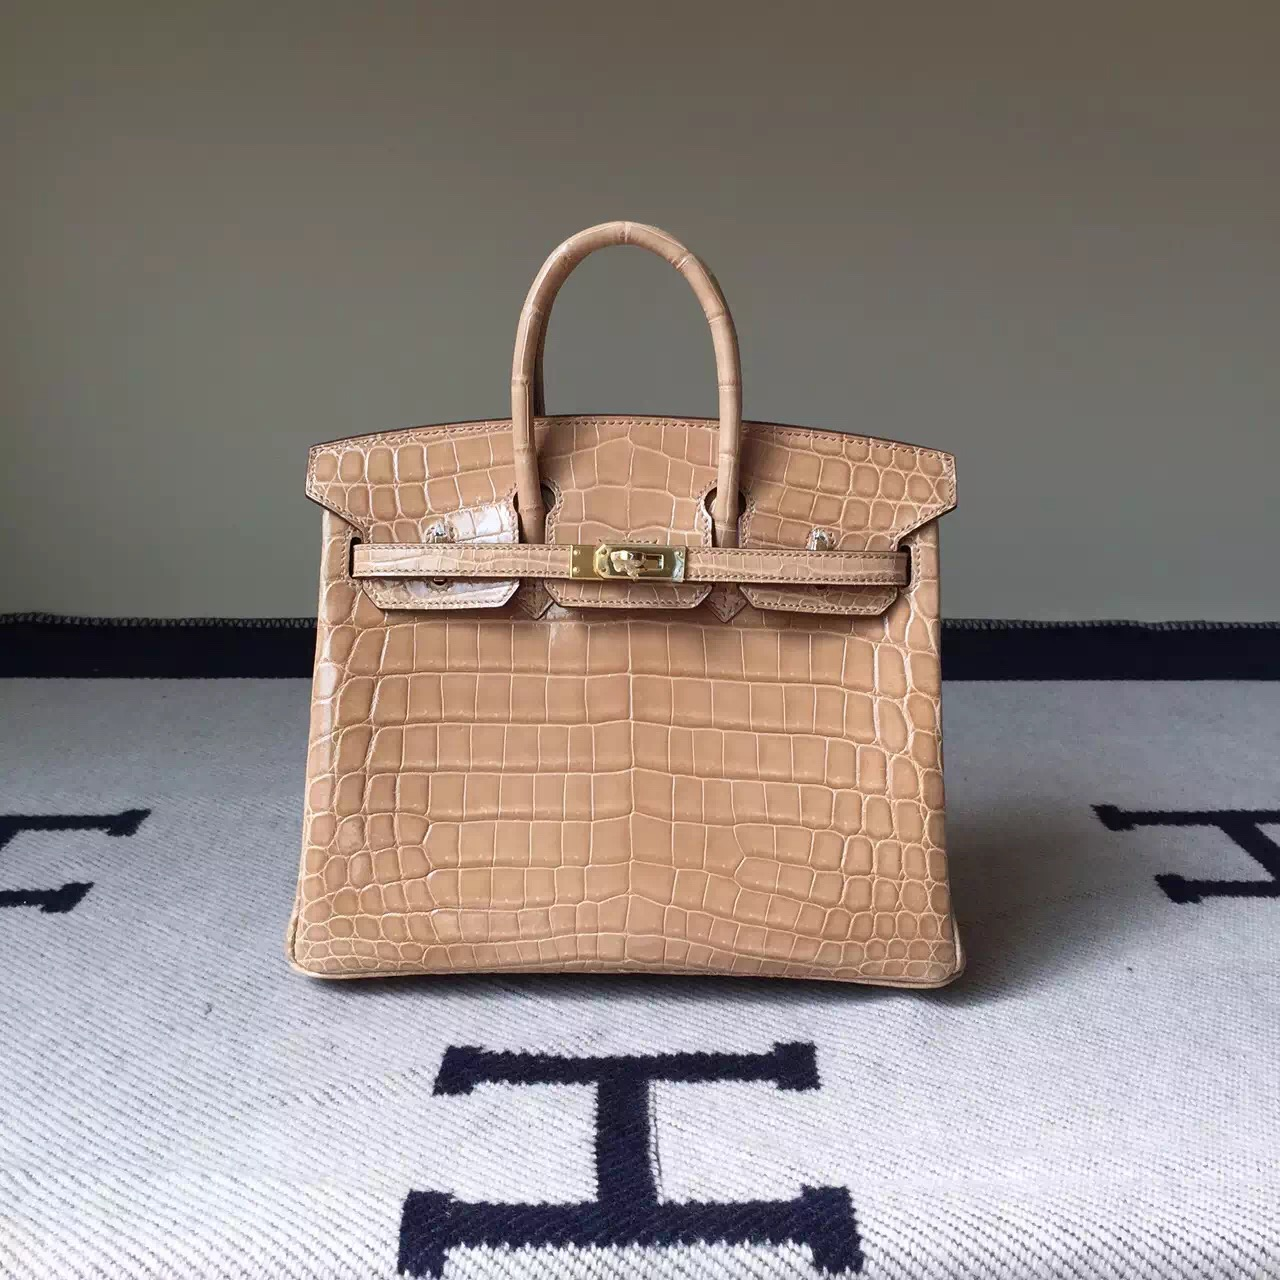 New Arrival Hermes Apricot Crocodile Shiny Leather Birkin Bag 25cm